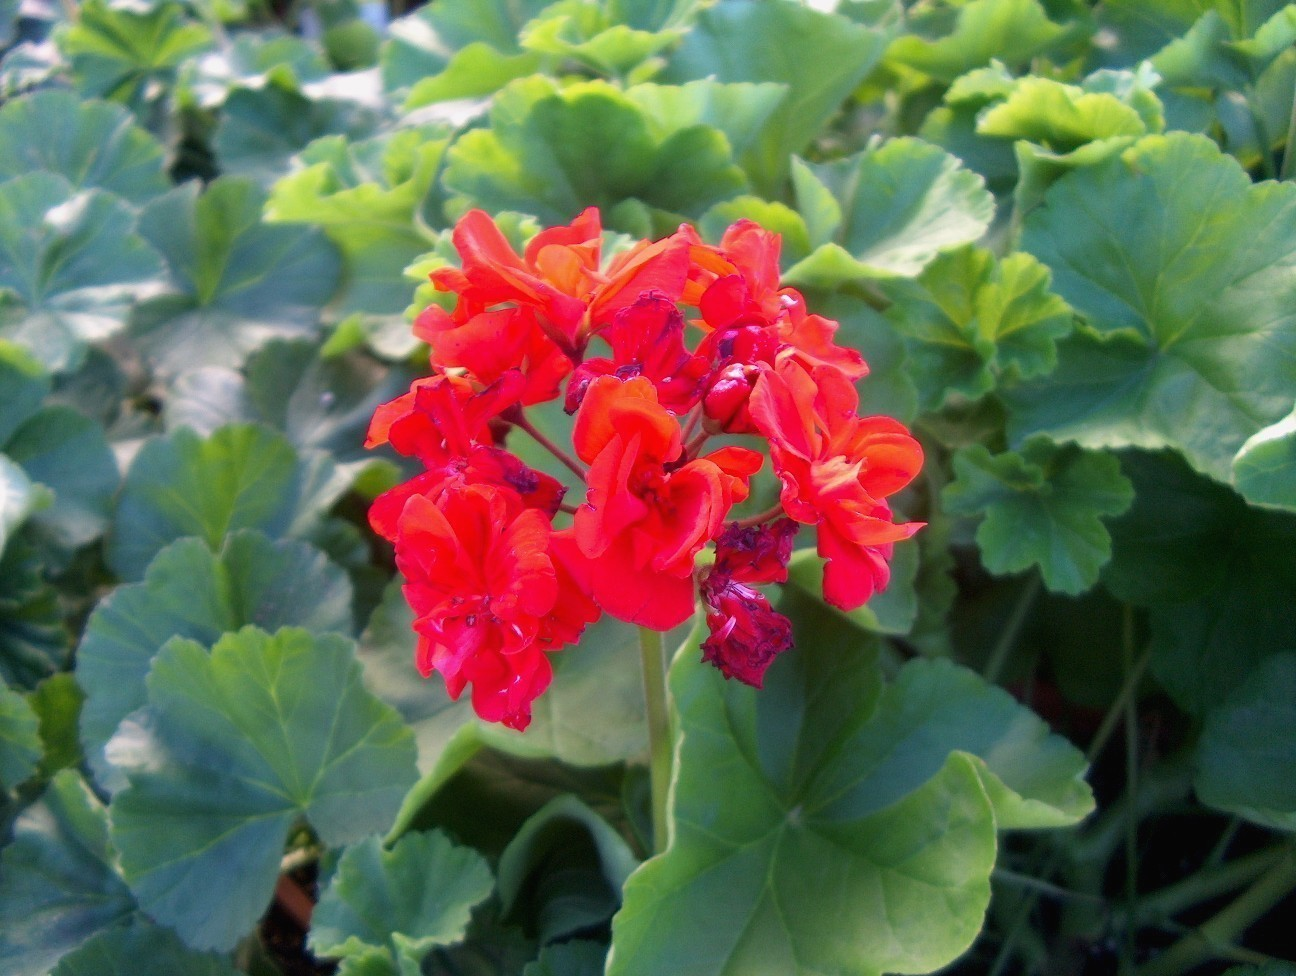 Pelargonium species  / Pelargonium species